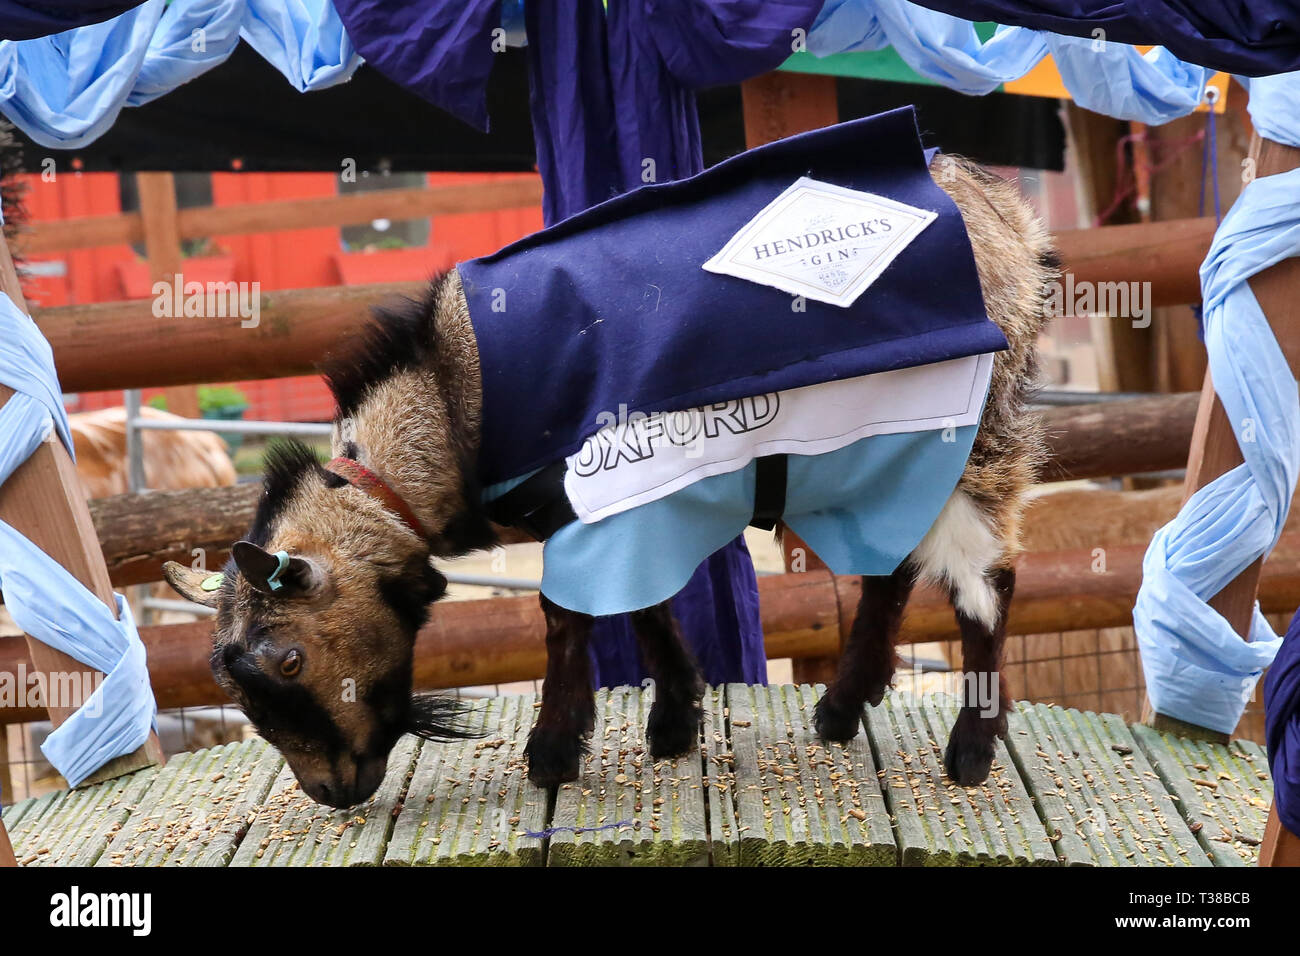 London, UK, UK. 7th Apr, 2019. The winner Hamish representing Oxford is seen on the podium after the Oxford vs Cambridge Goat Race in East London.Two pygmy goats compete during the 10th Oxford and Cambridge Goat Race at Spitalfields City Farm, Bethnal Green in East London. The annual fundraising event, which takes place at the same time as the Oxford and Cambridge boat race, where two goats, one named Hamish representing Oxford and the other Hugo representing Cambridge to be crowned King Billy. Credit: Dinendra Haria/SOPA Images/ZUMA Wire/Alamy Live News - Stock Image